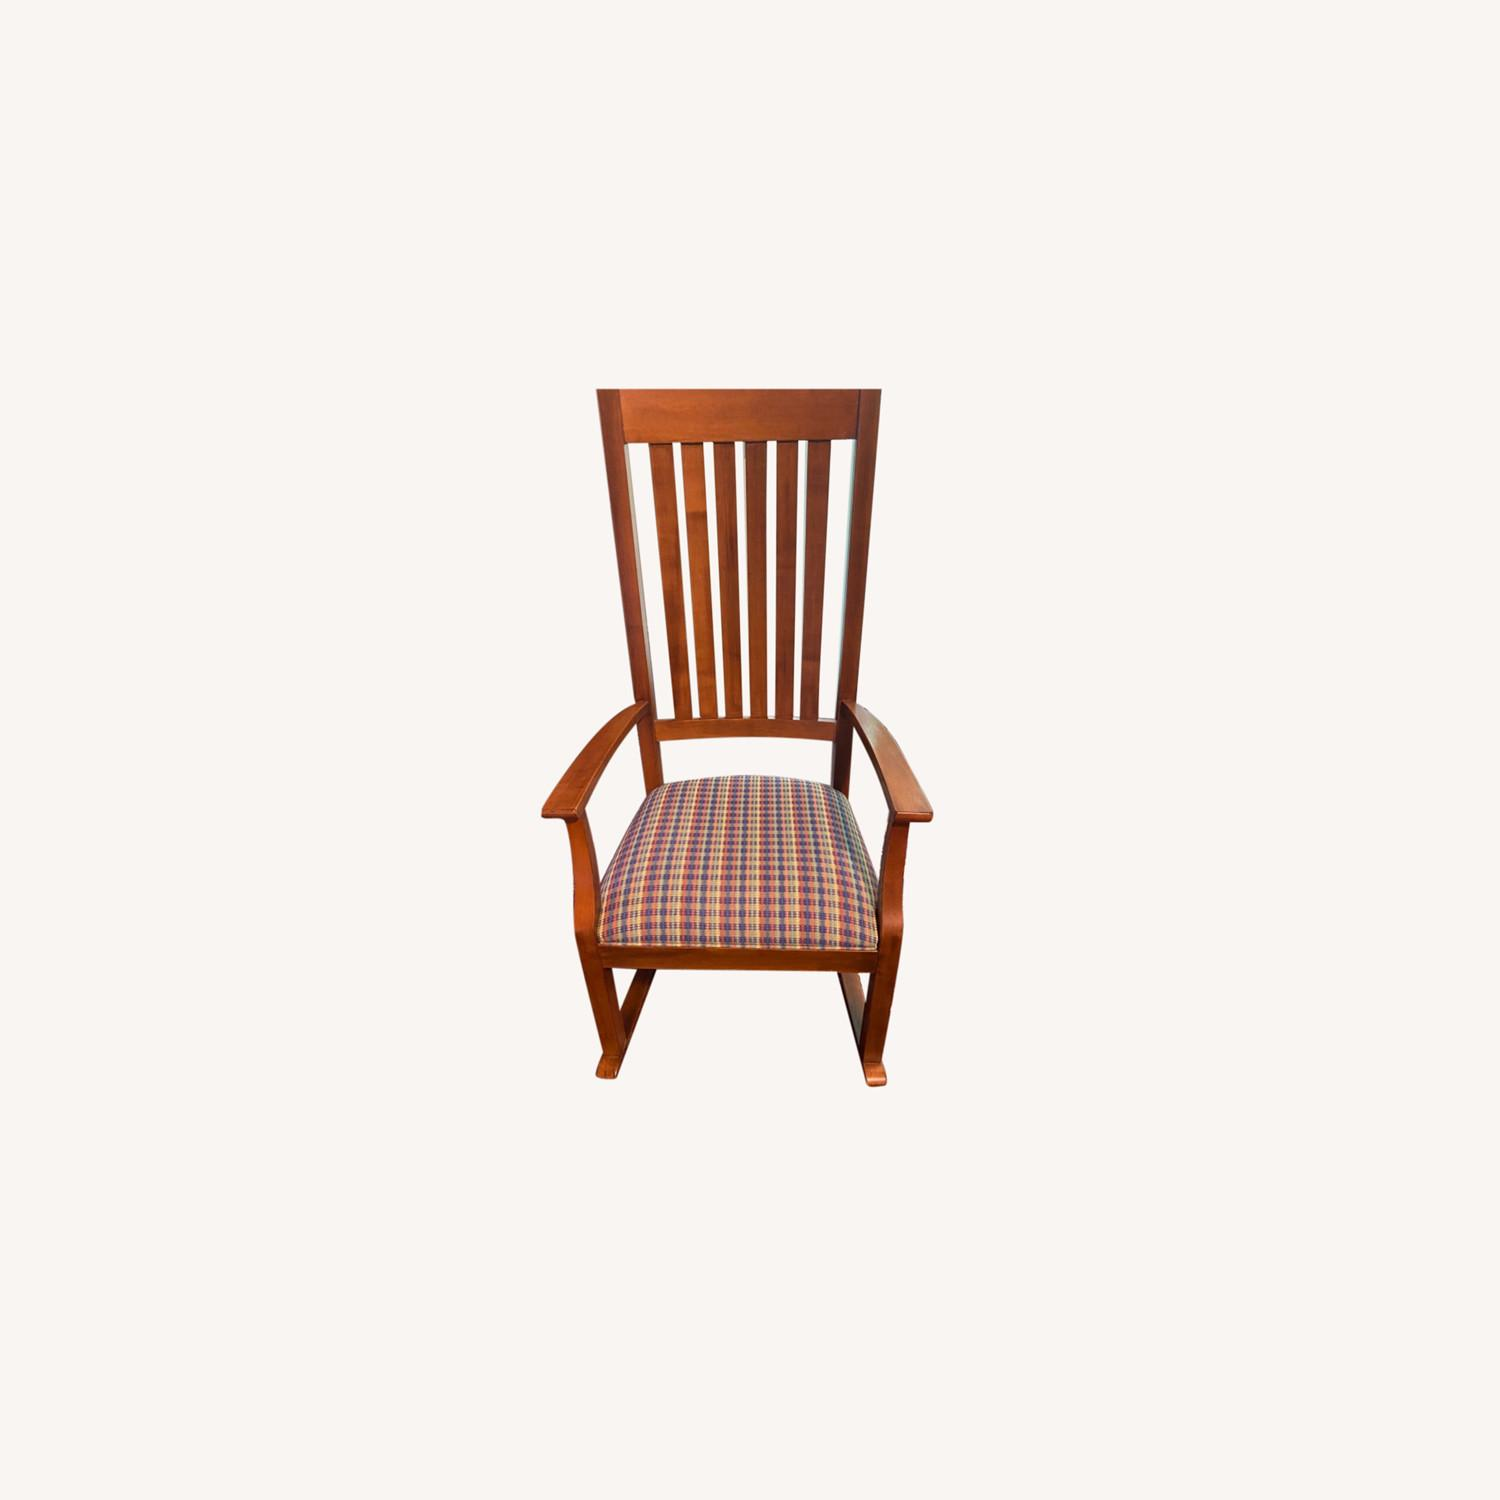 Ethan Allen Wood and cotton Fabric Chair - image-0